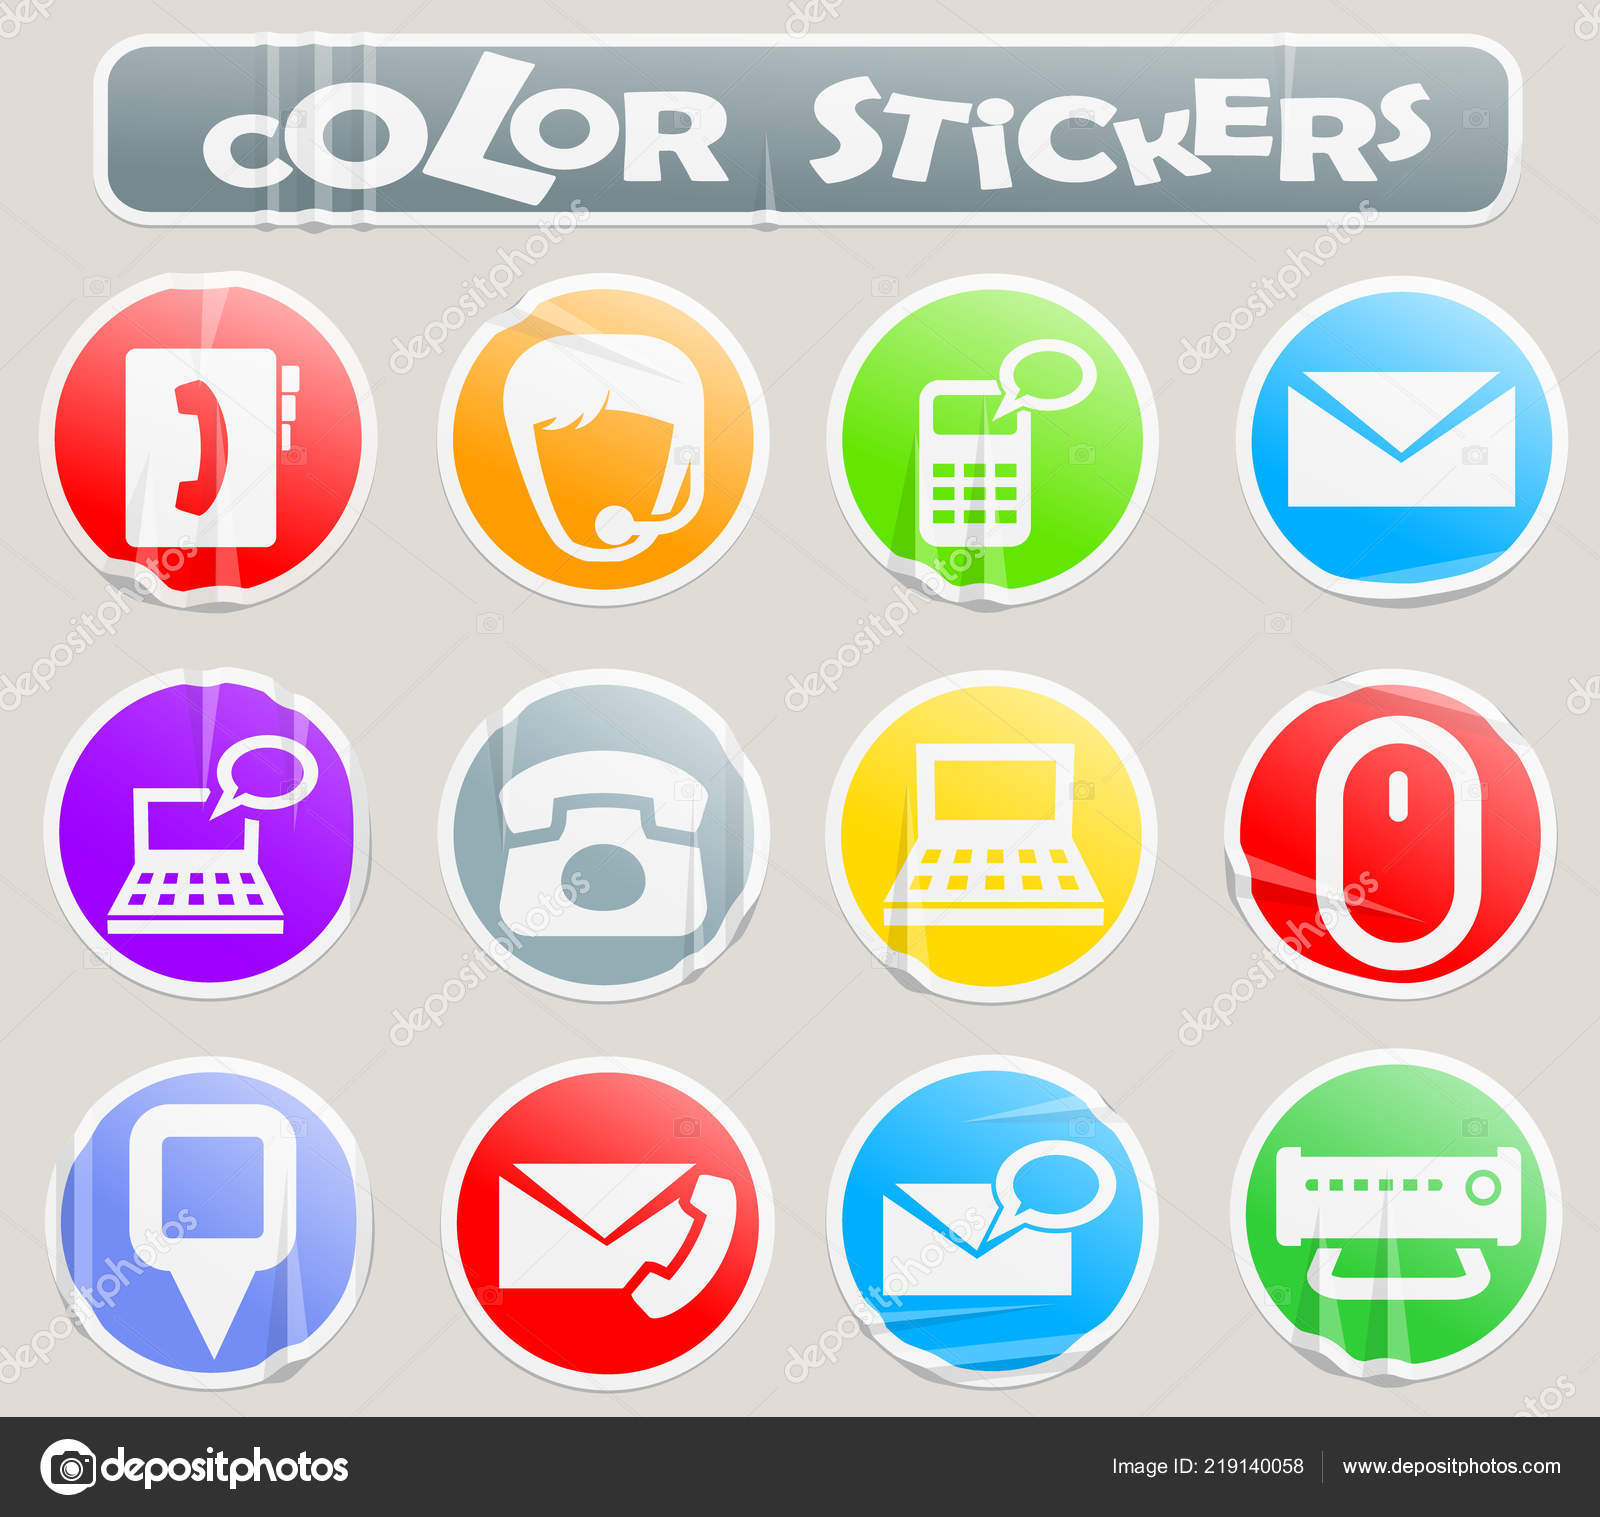 Contact us color stickers stock illustration